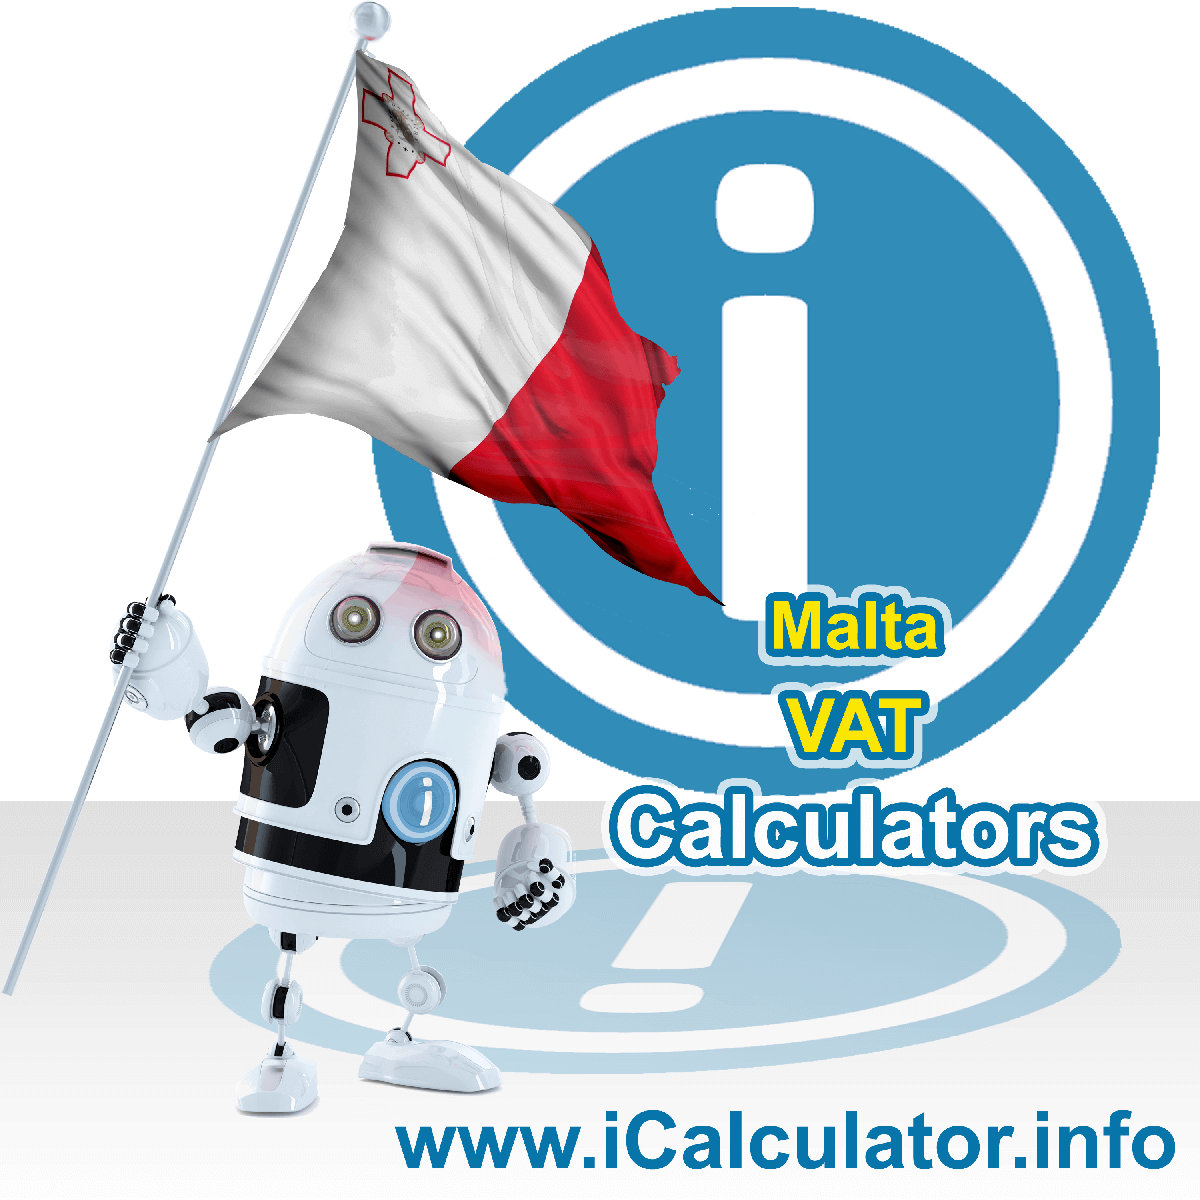 Malta VAT Calculator. This image shows the Malta flag and information relating to the VAT formula used for calculating Value Added Tax in Malta using the Malta VAT Calculator in 2020